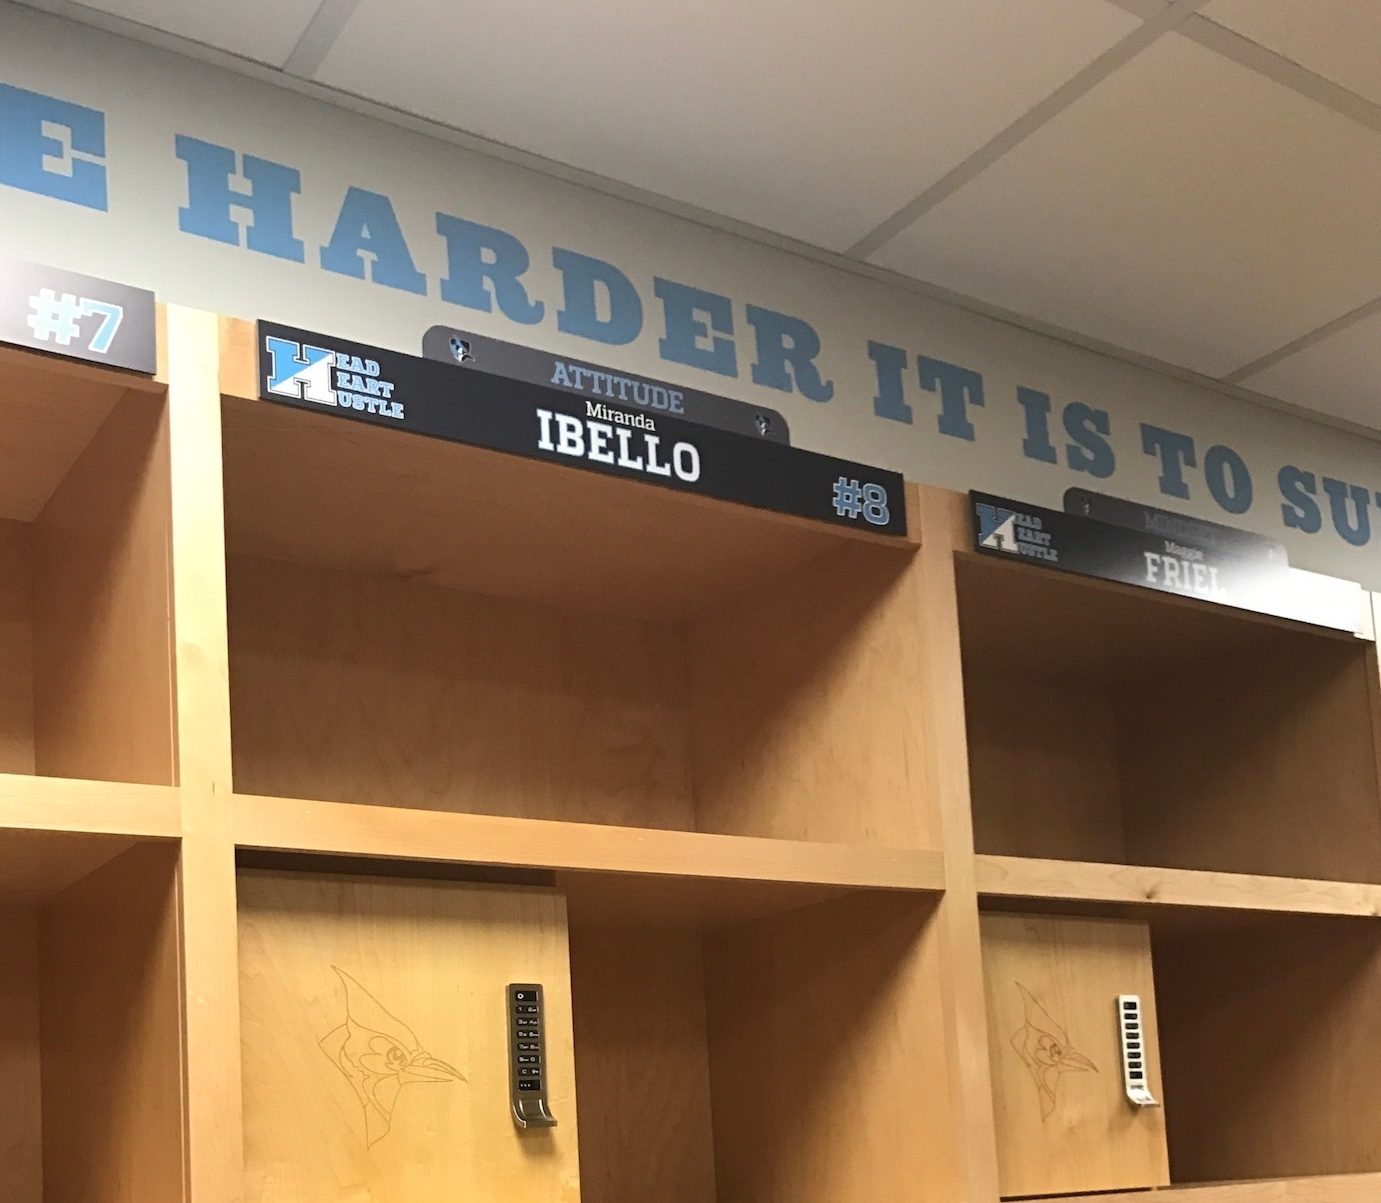 locker nameplate jhu wlax.jpg